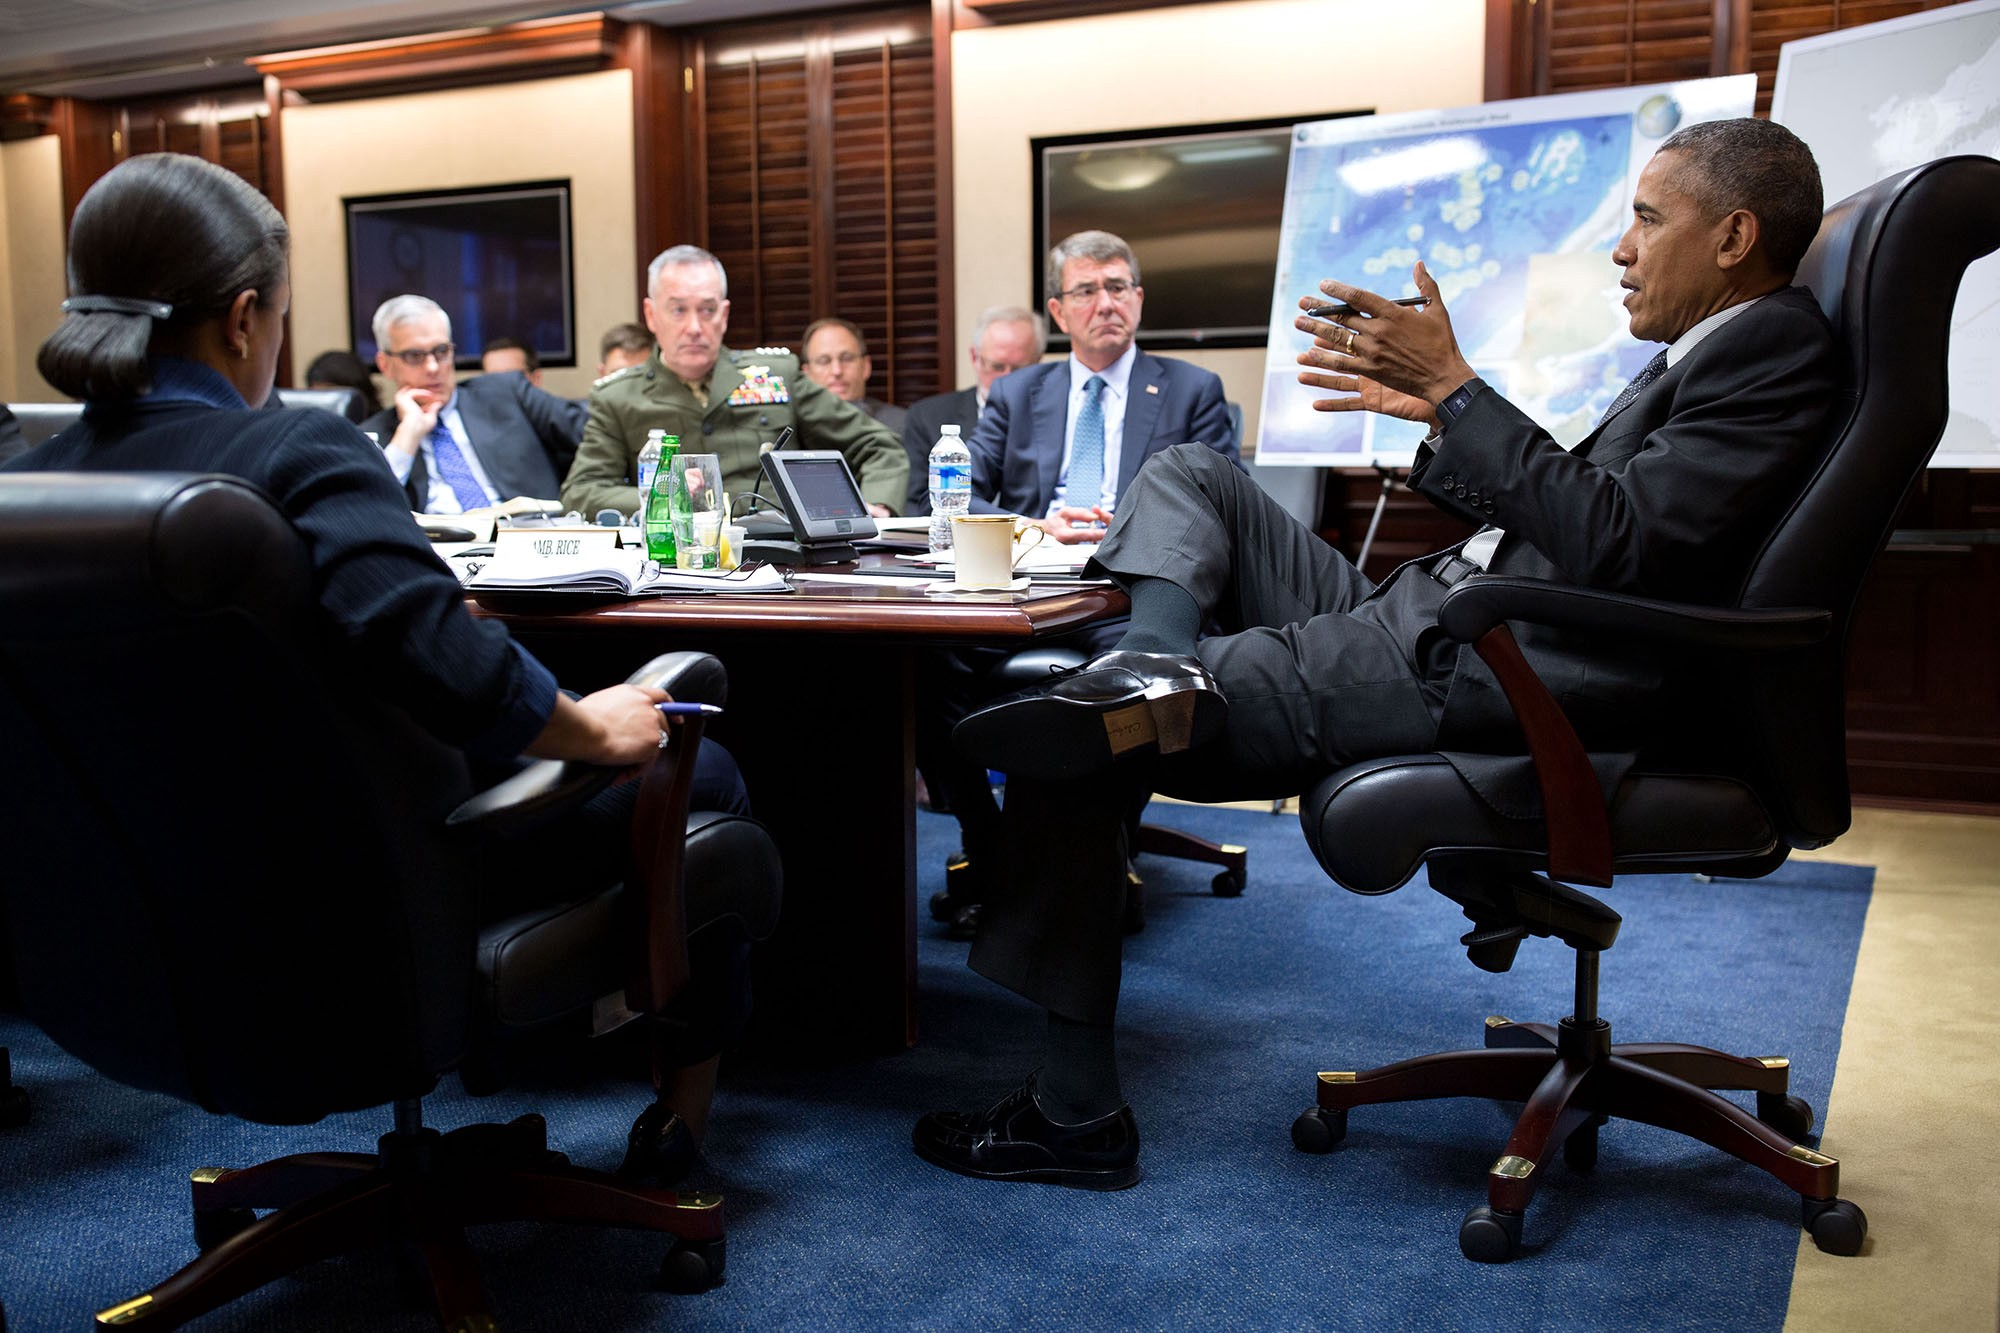 behind the lens year in photographs the obama white house i spend a lot of time every year in the situation room which is not my favorite room to work in because it s so difficult to move around